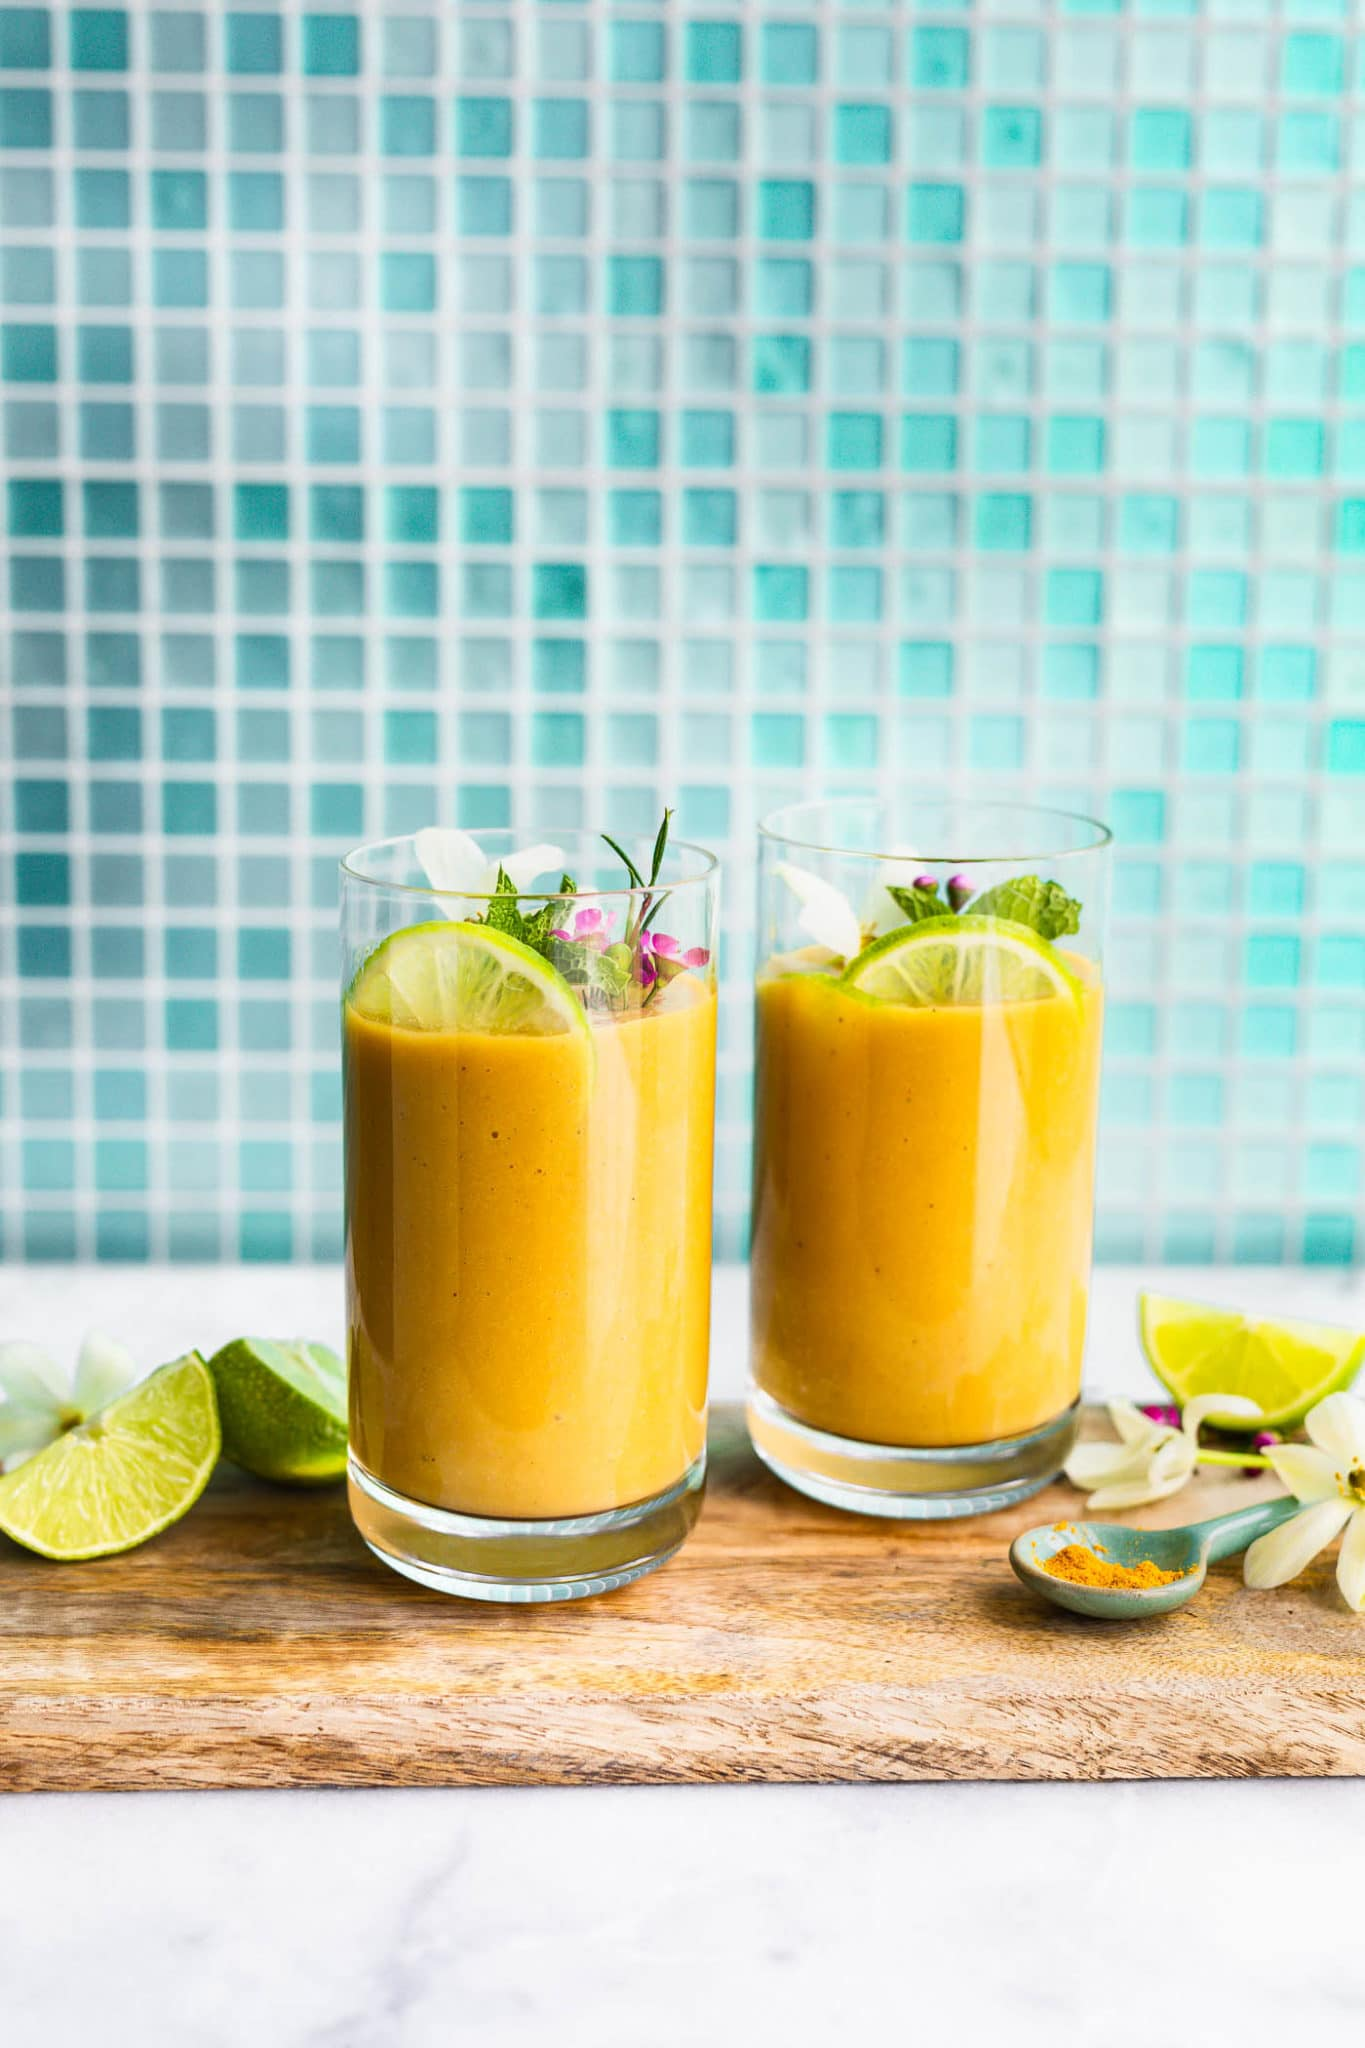 A side shot of two turmeric smoothies in glasses on a serving tray with a garnish of lime, mint, and flowers.